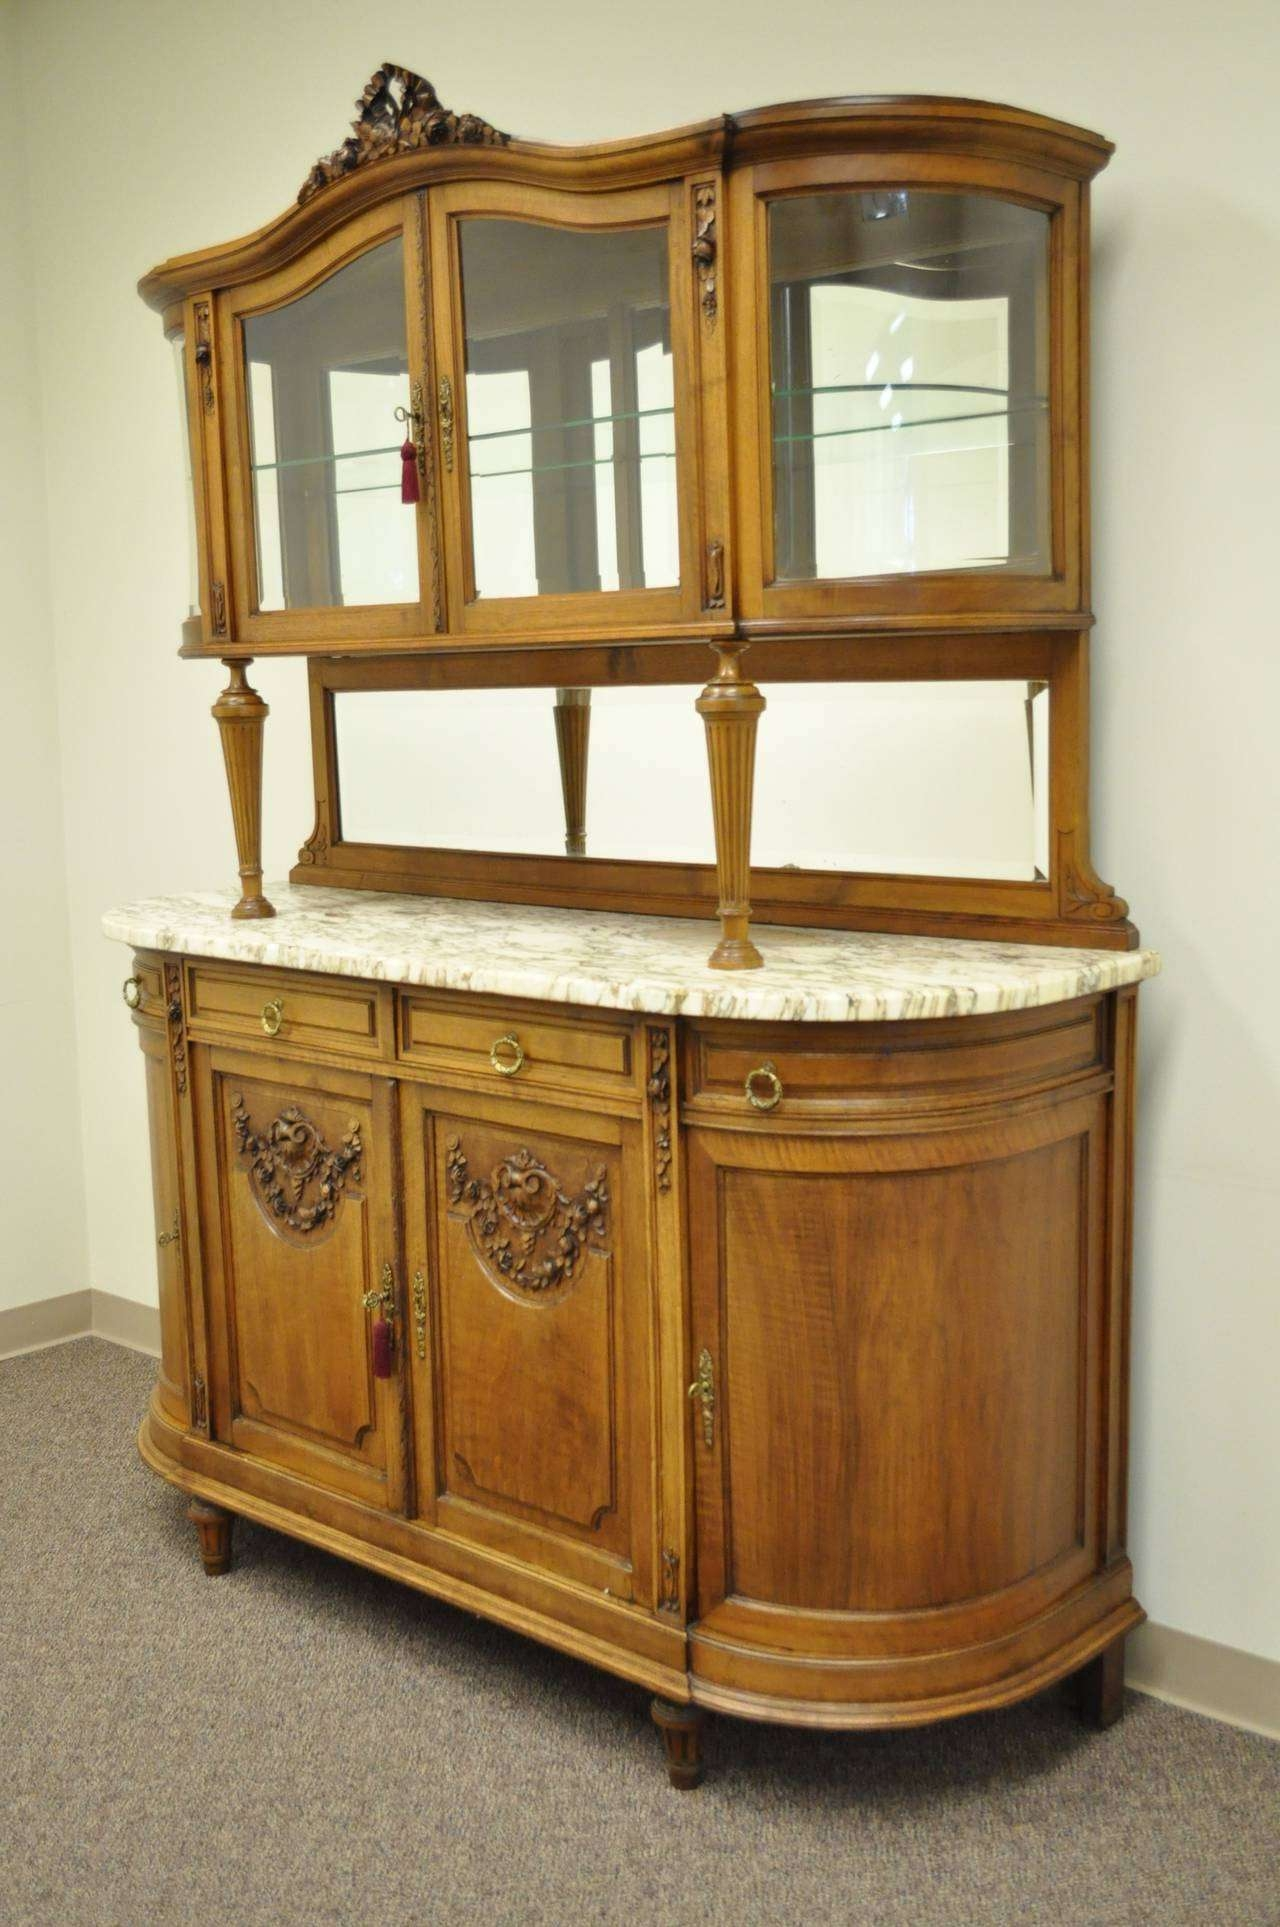 French Louis Xvi Style Marble Top Sideboard Or Curio Cabinet Pertaining To Sideboards With Marble Tops (View 8 of 20)